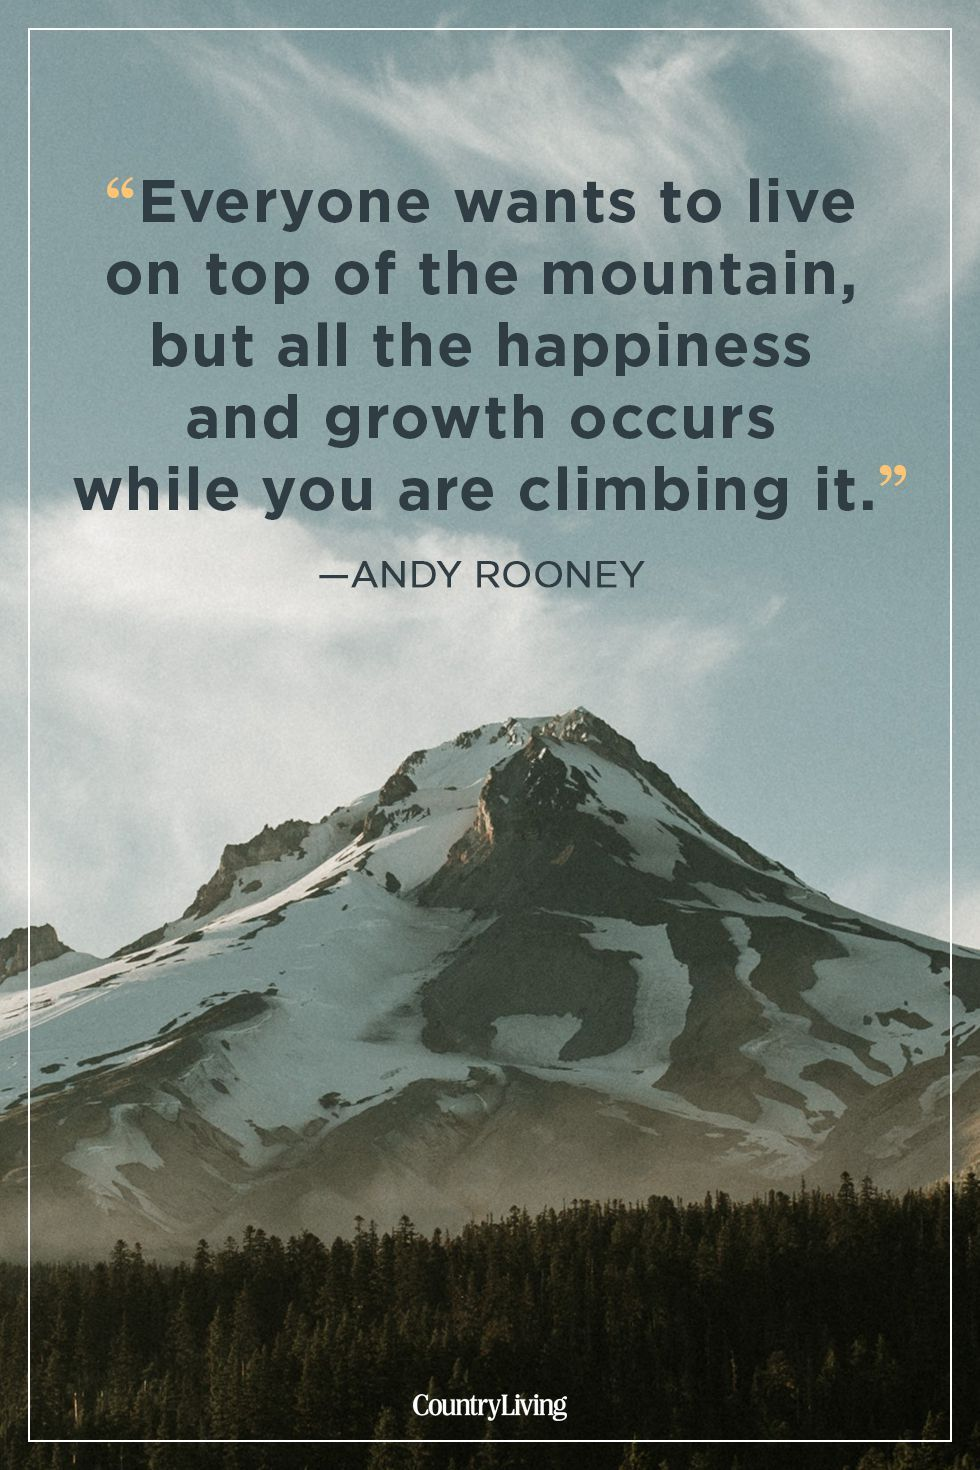 25 Hiking Quotes That Will Inspire Your Next Adventure Nature Quotes Adventure Adventure Quotes Nature Quotes